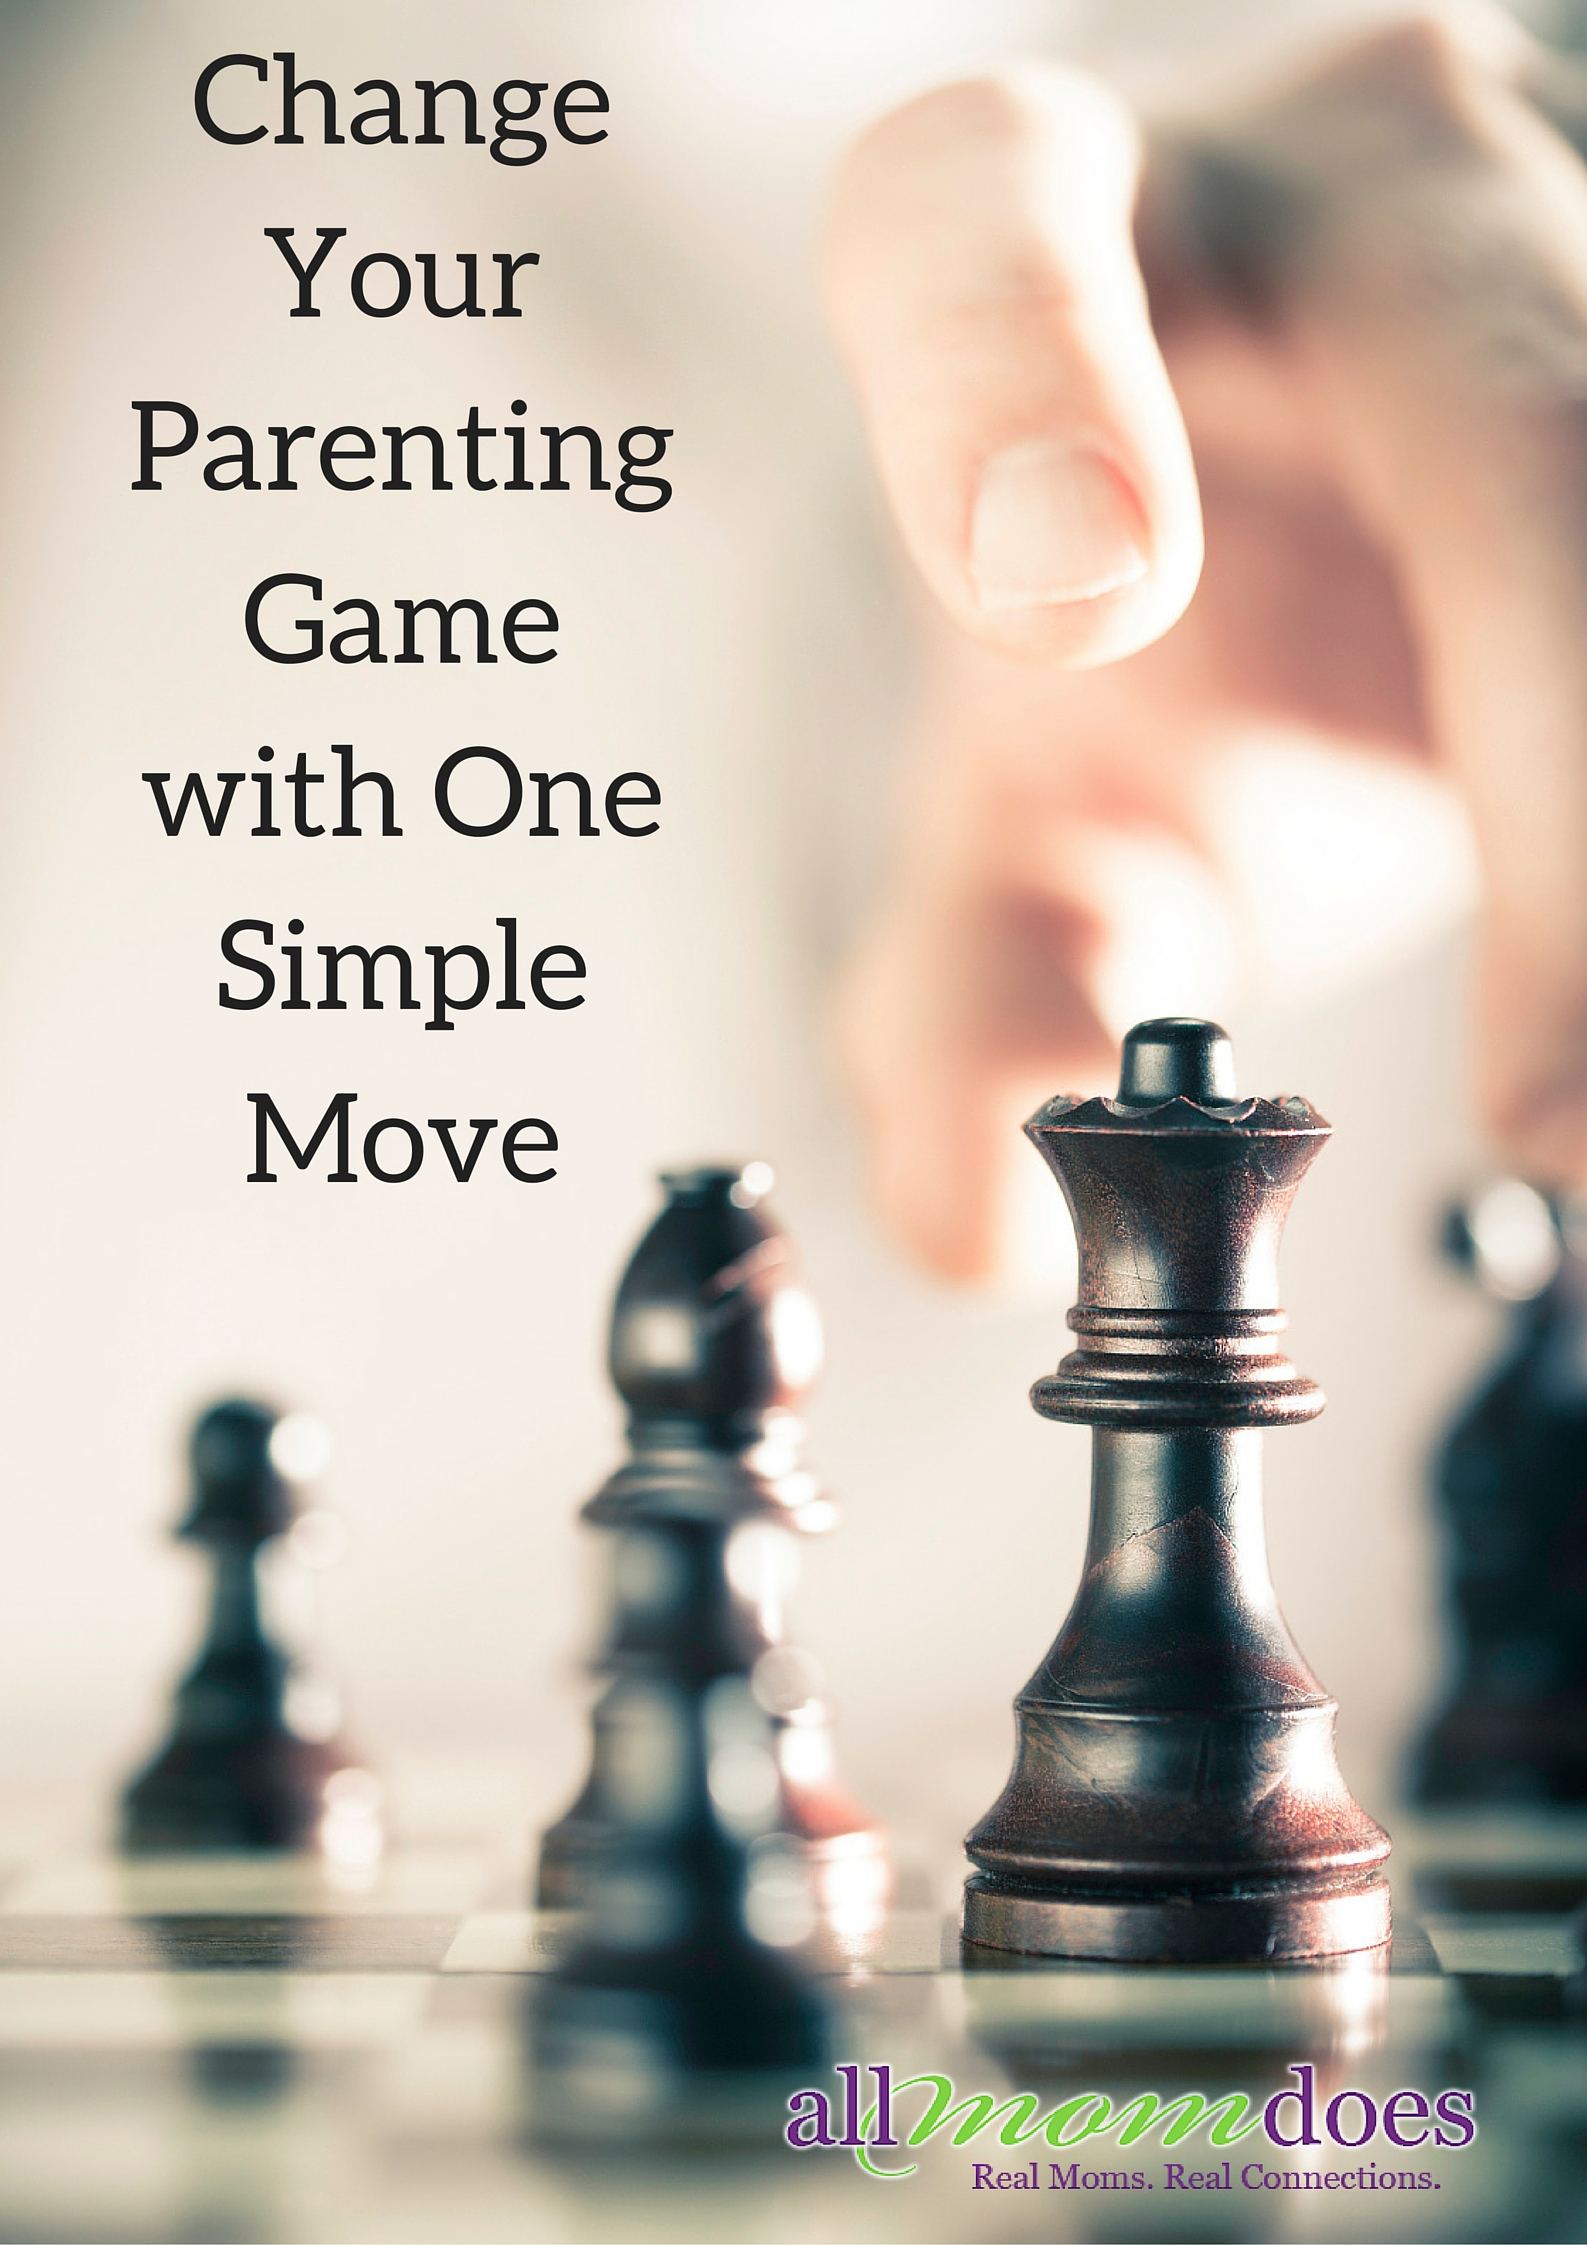 Change Your Parenting Game with One Simple Move